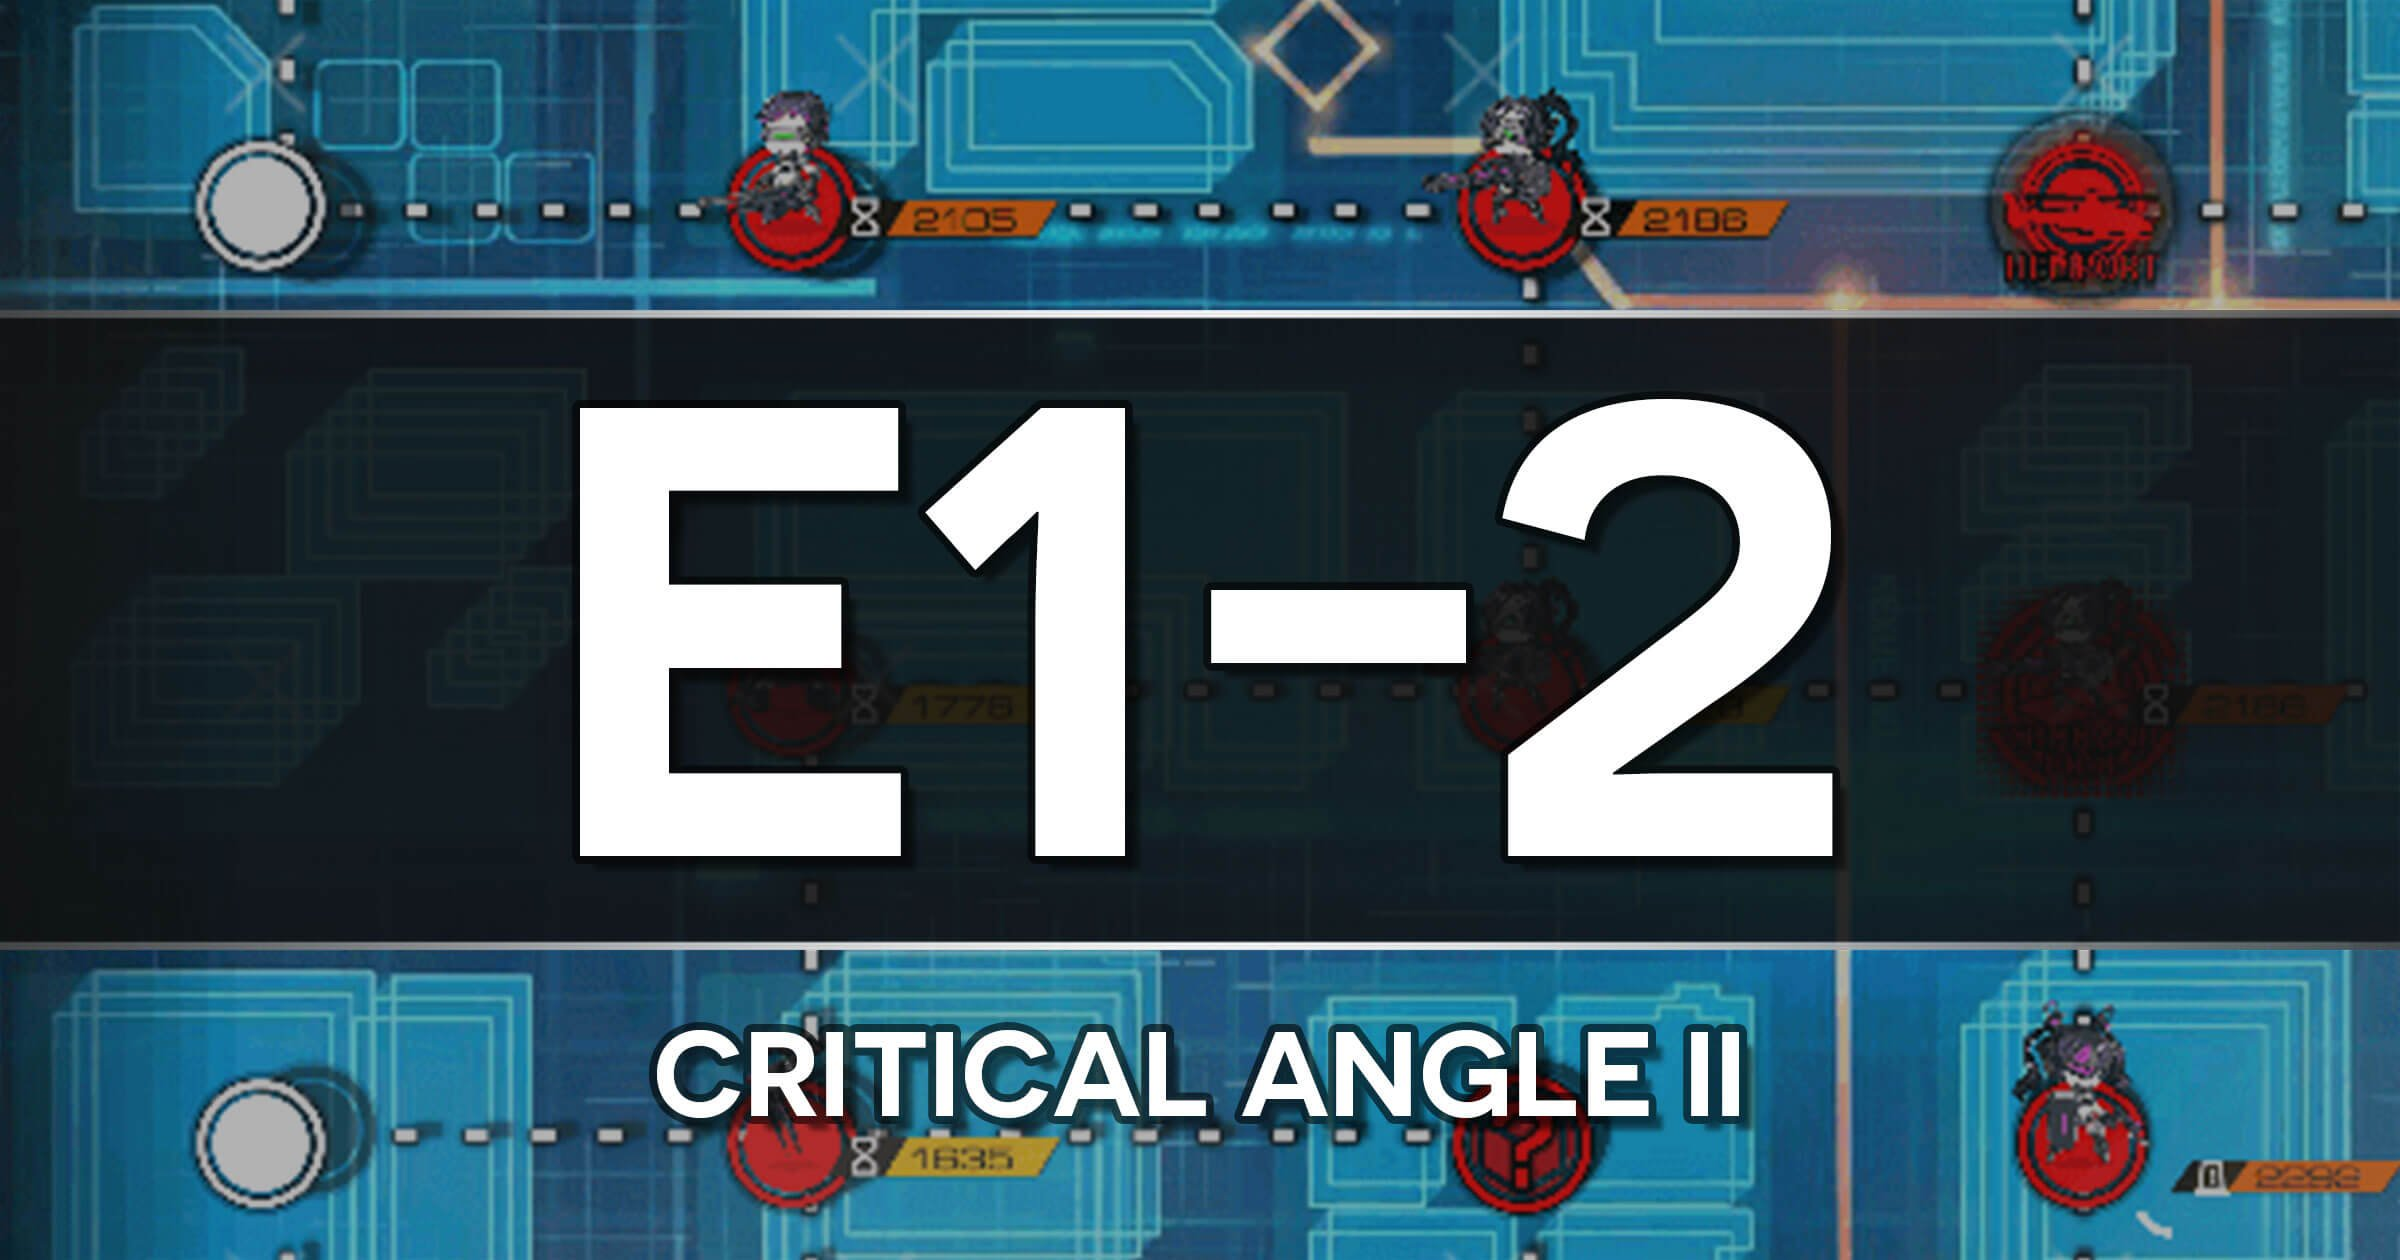 A guide to the Girls Frontline Polarized Light Event stage E1-2: Critical Angle II